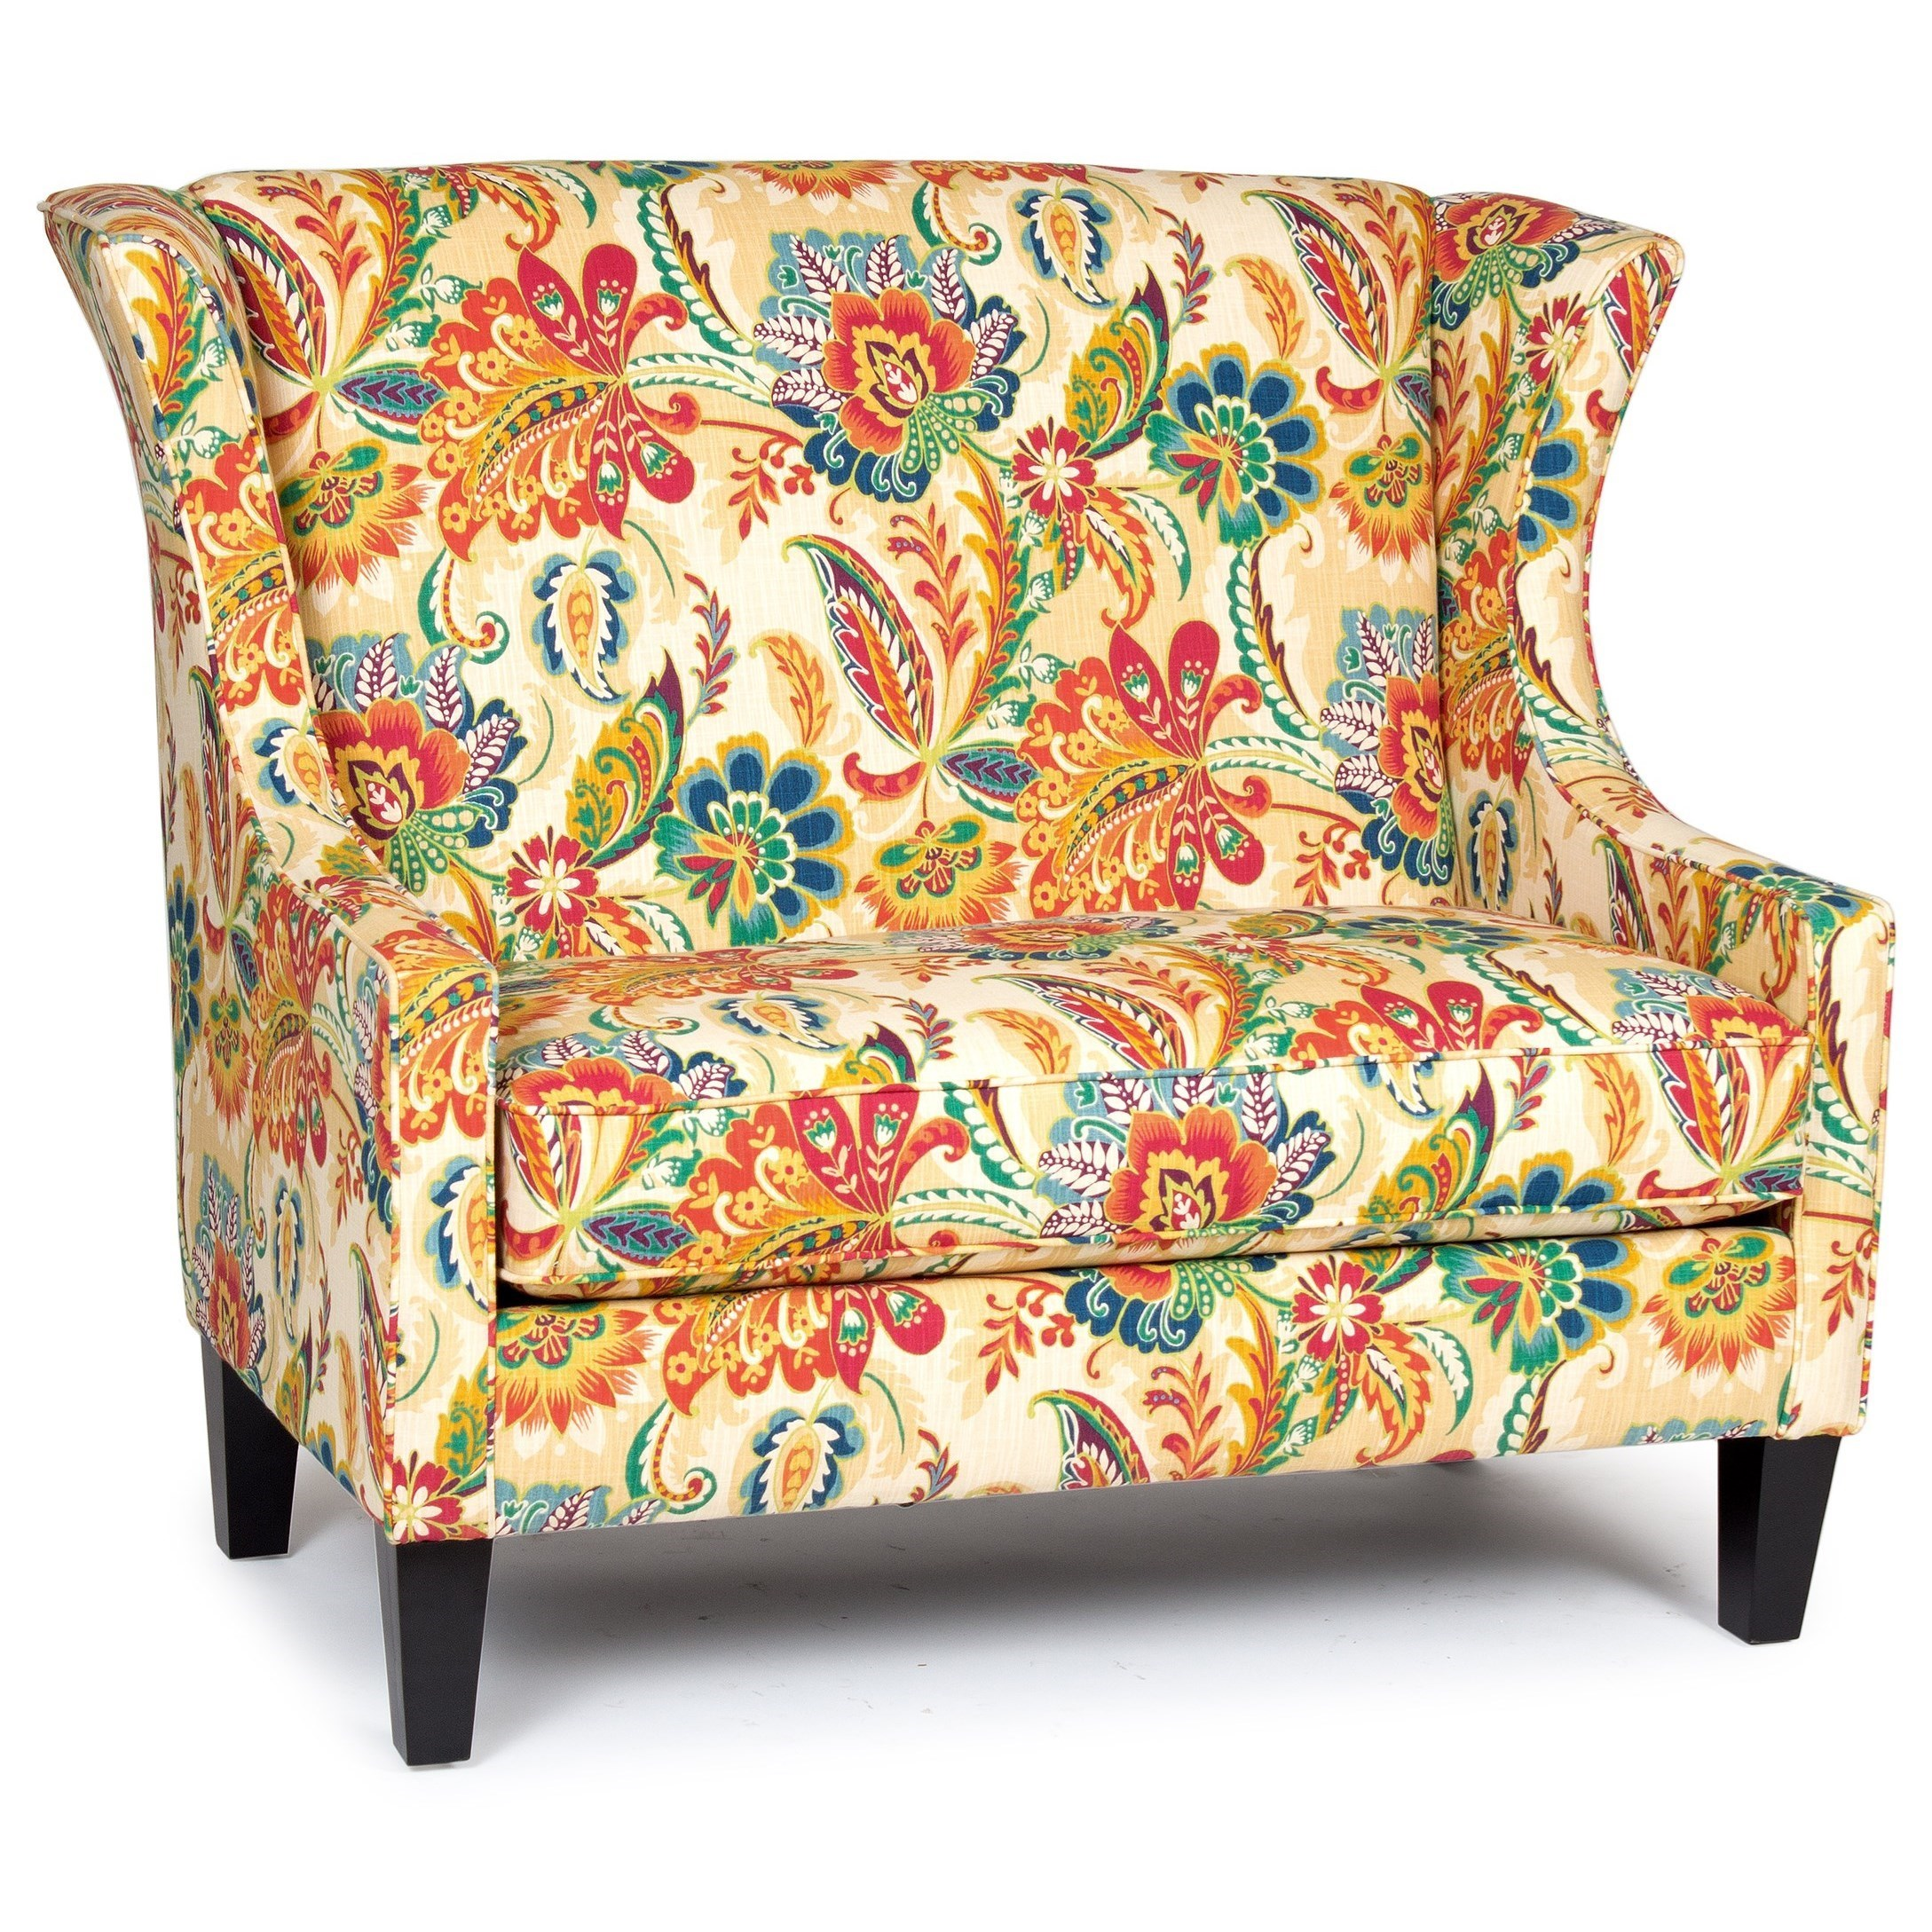 Chairs America Accent Chairs And OttomansSettee